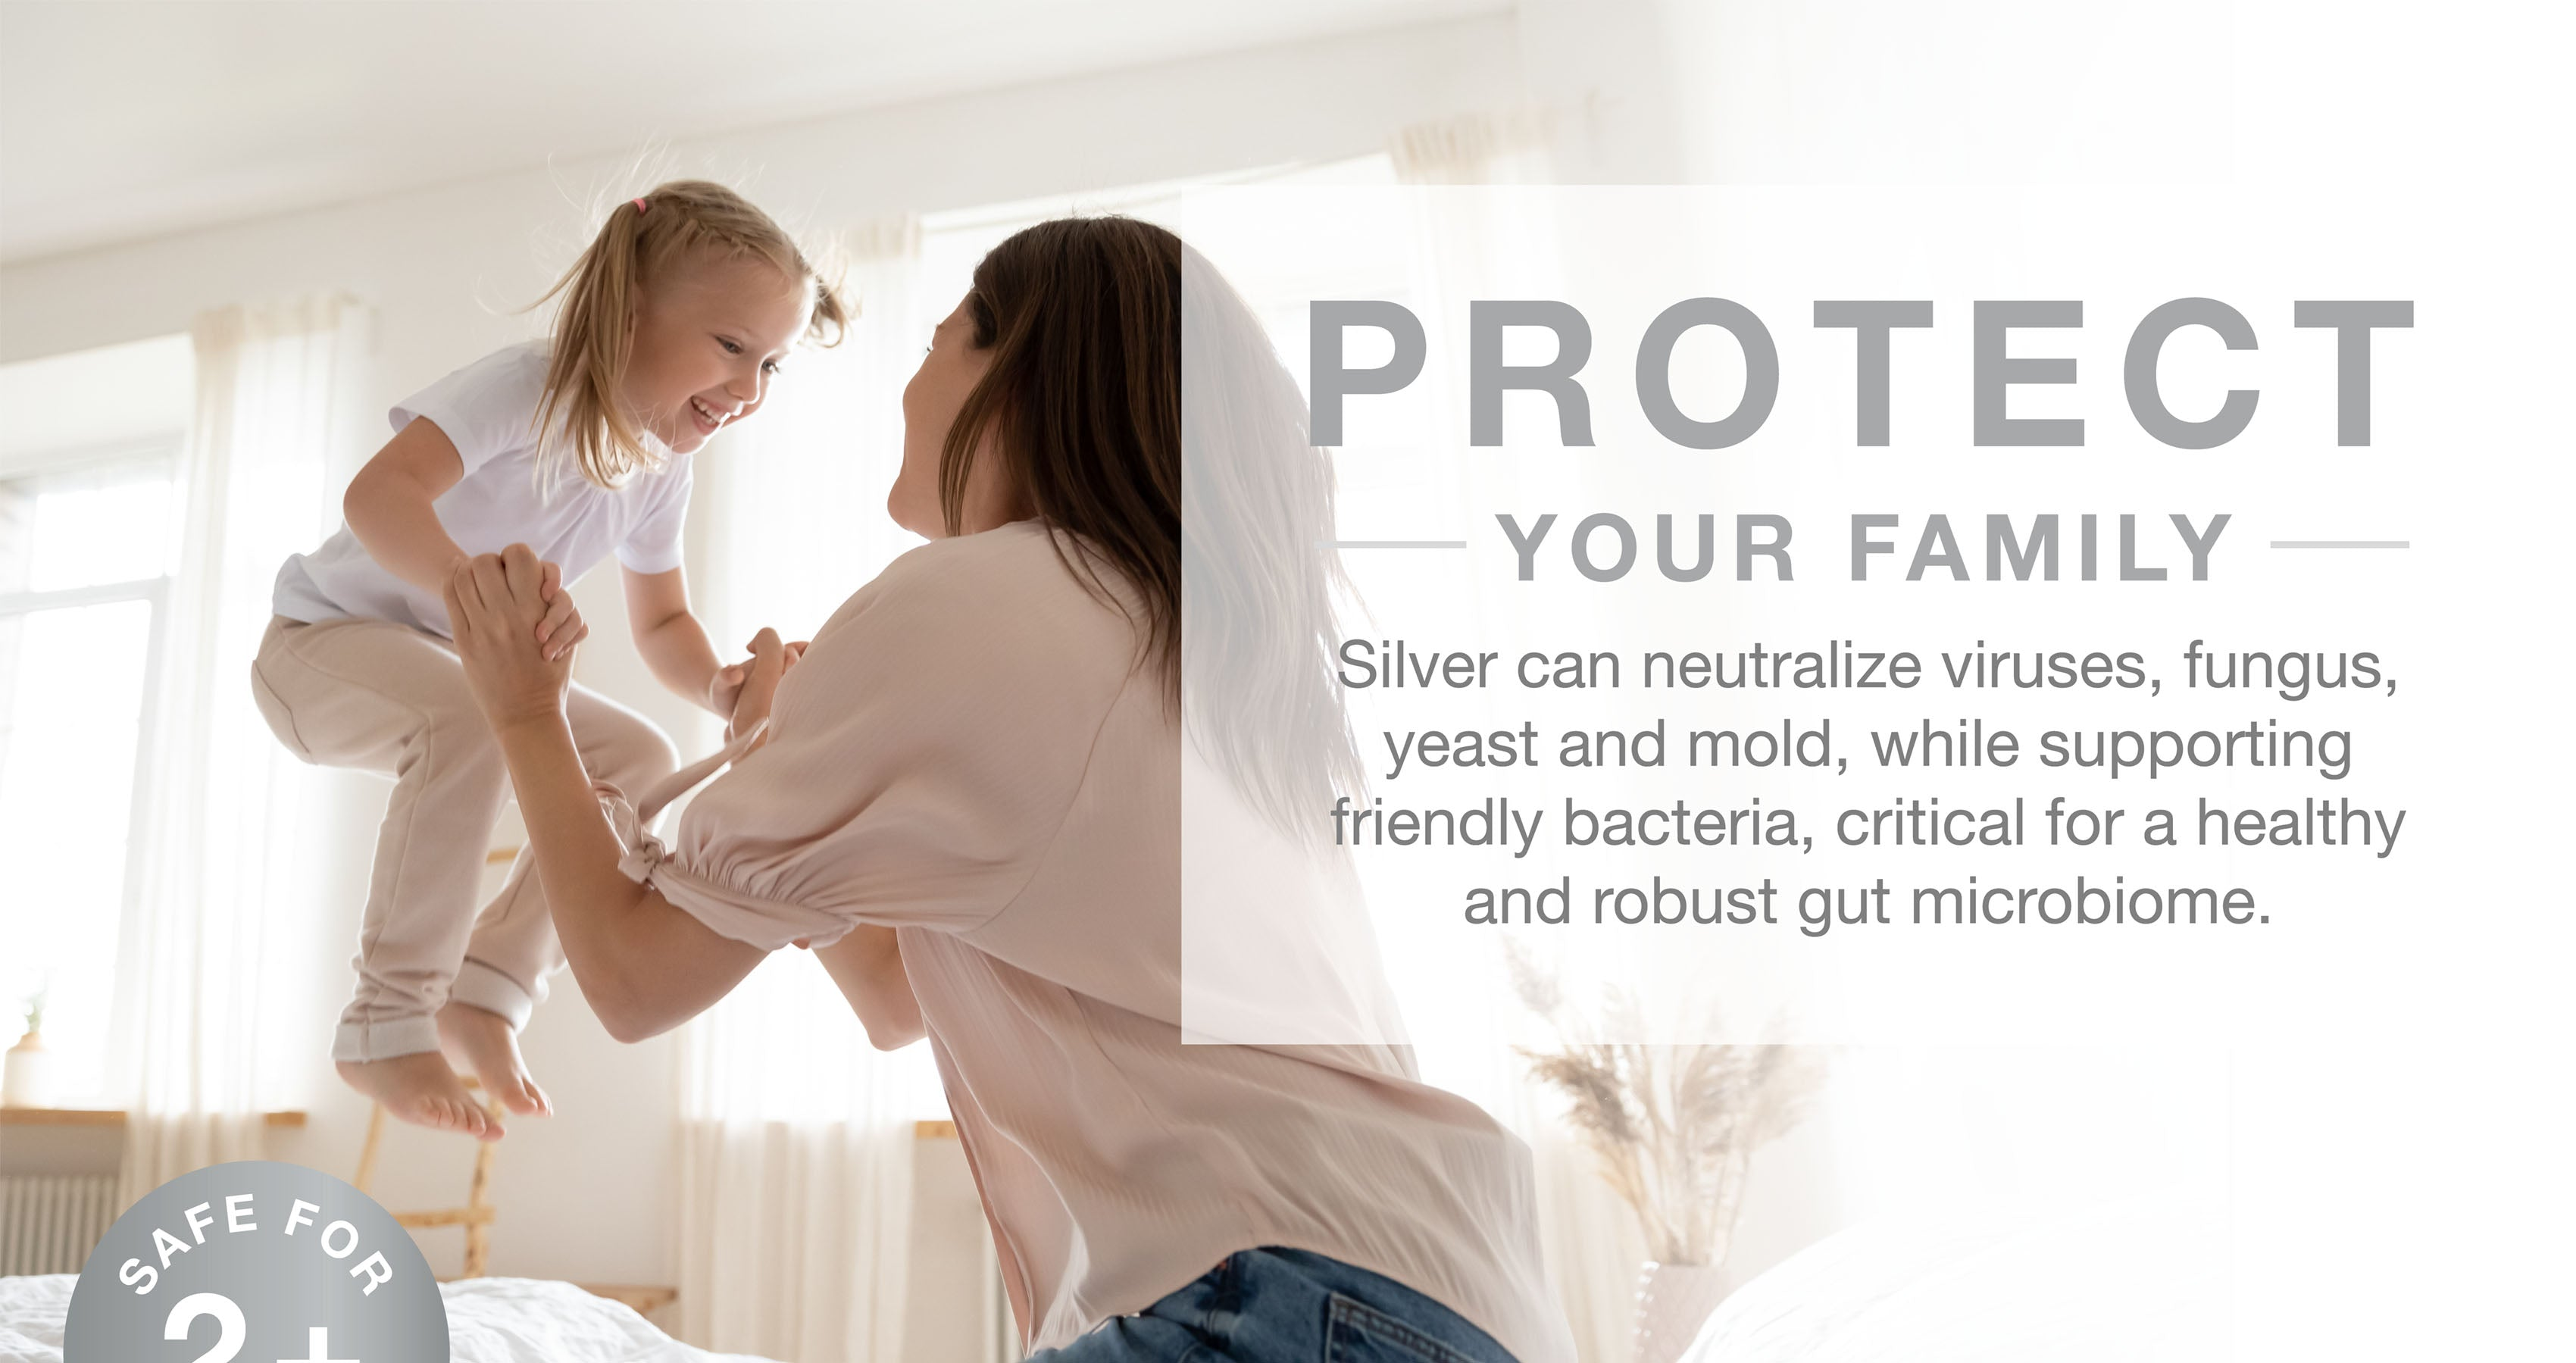 Coated silver can protect your family by neutralizing viruses and fungi while supporting friendly bacteria.